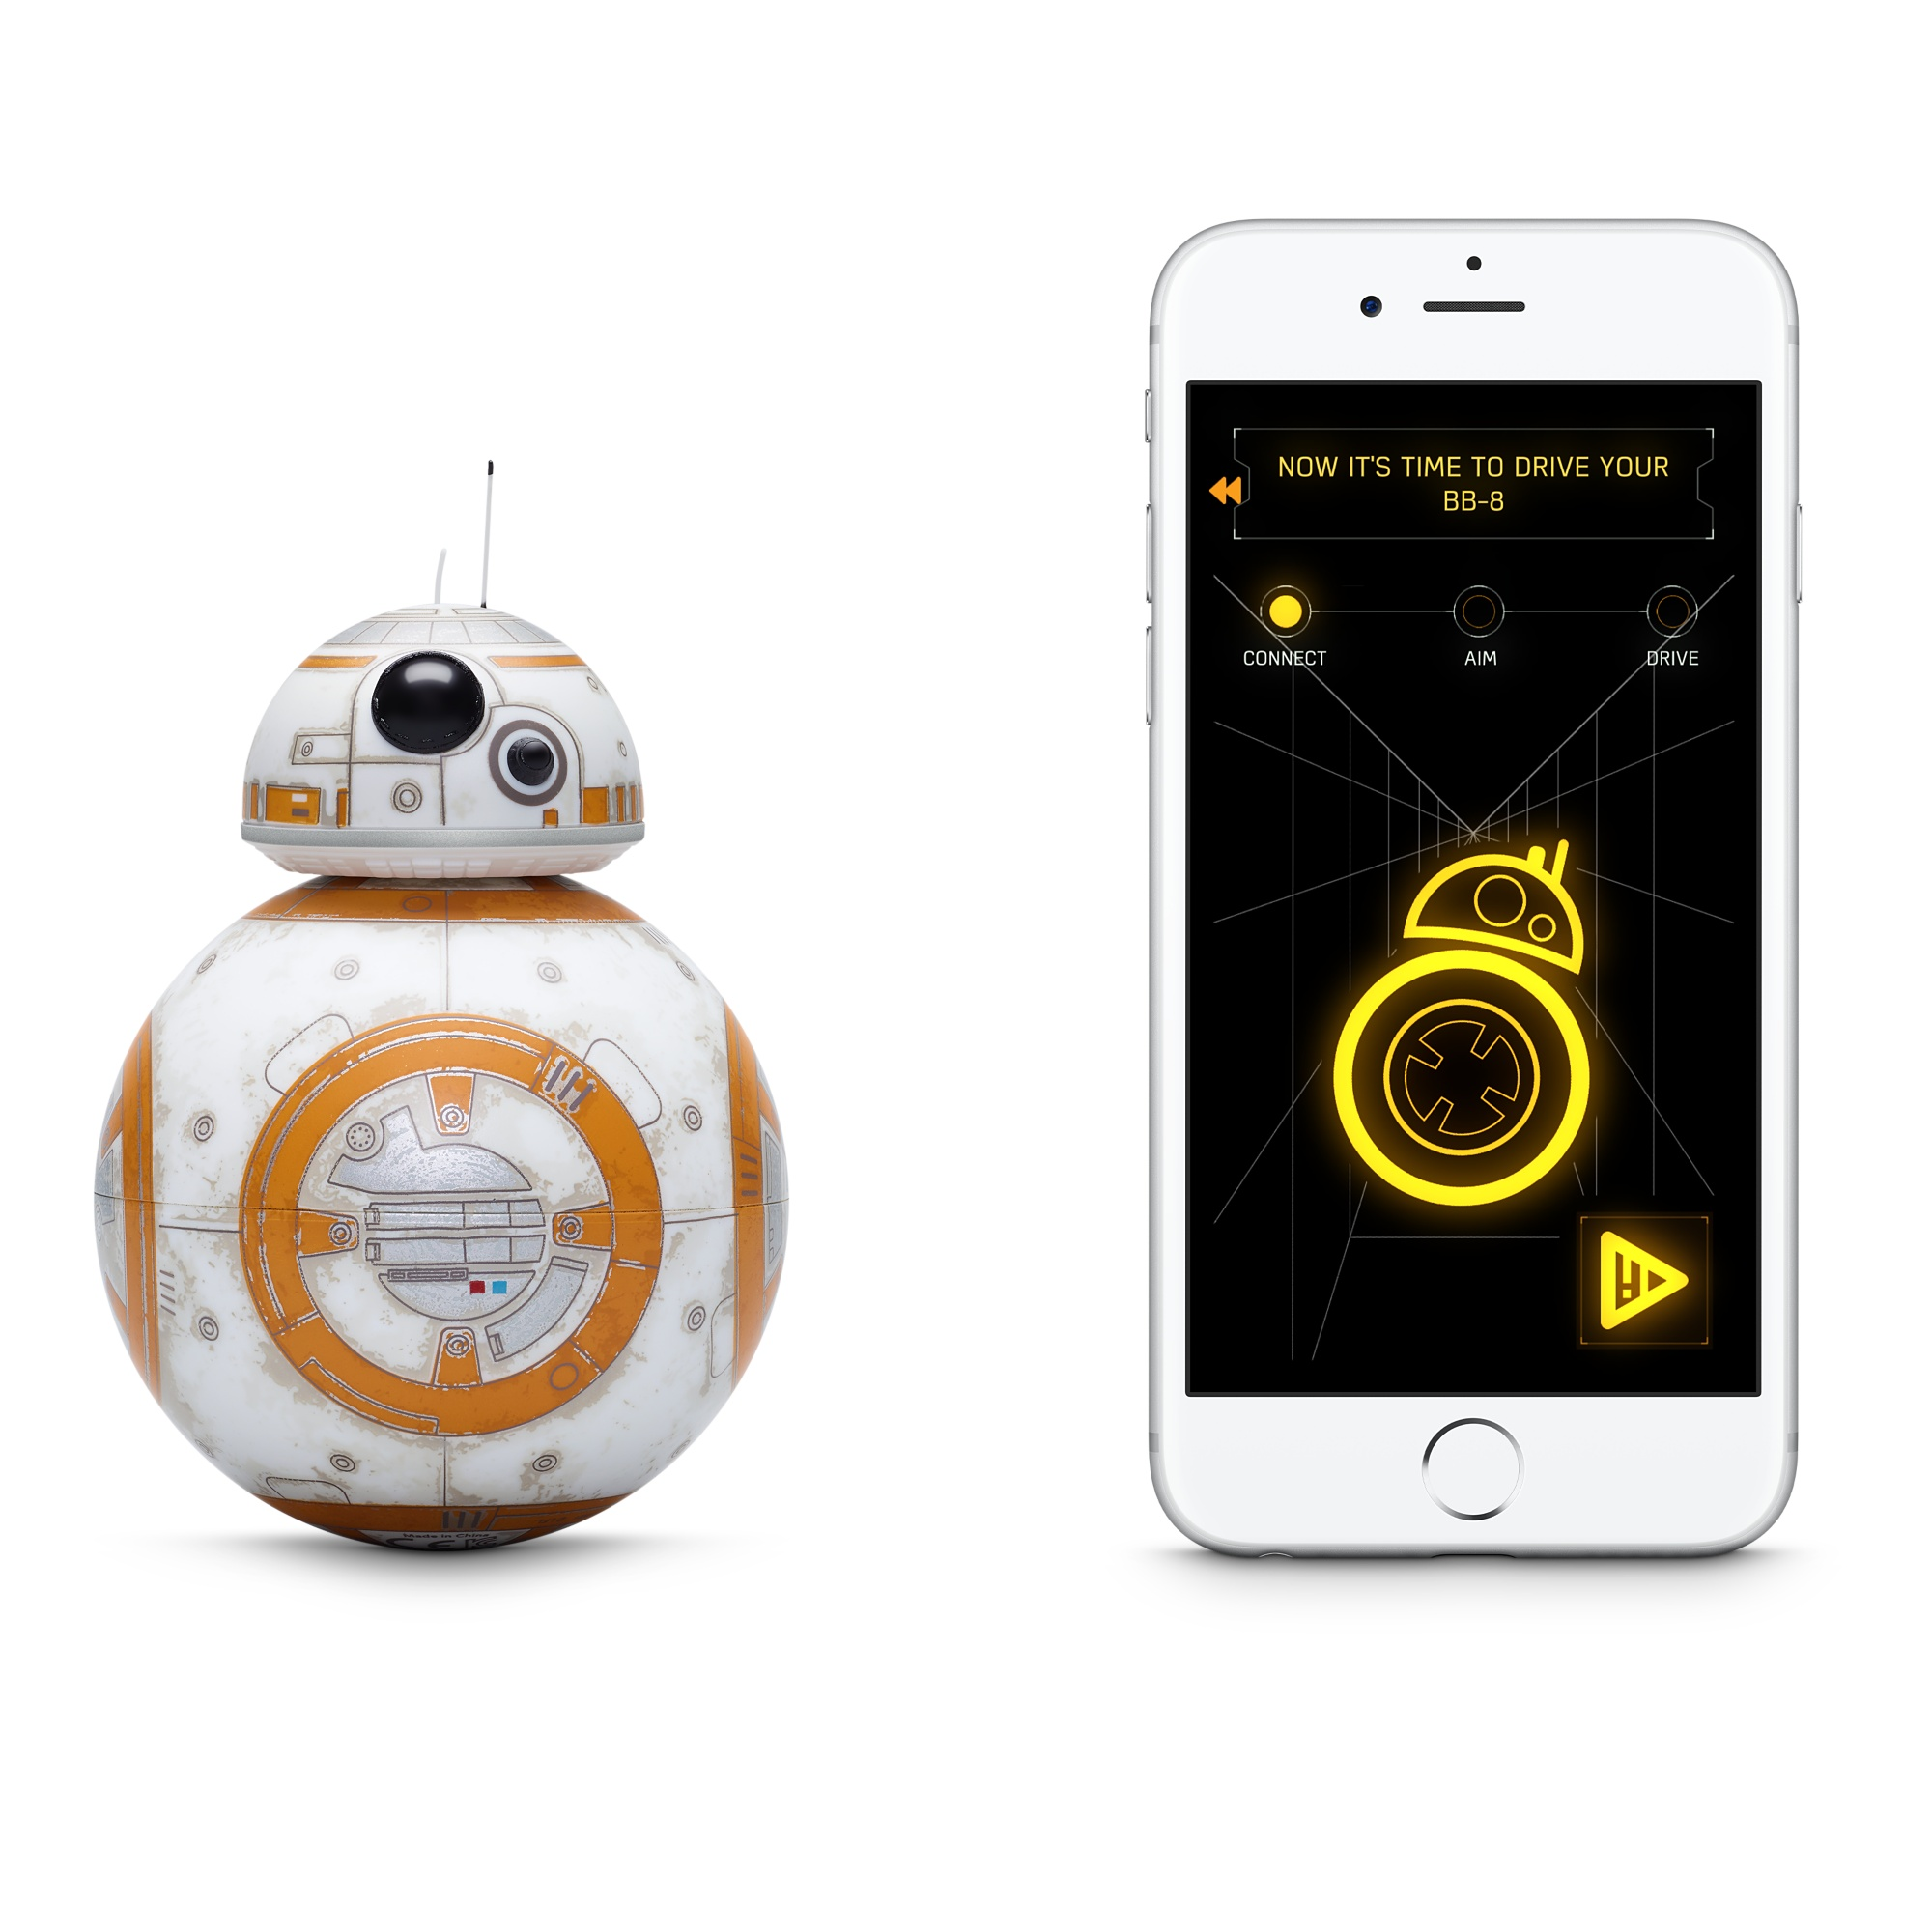 battle-worn-bb-8-droid-with-force-band-by-sphero-iphone